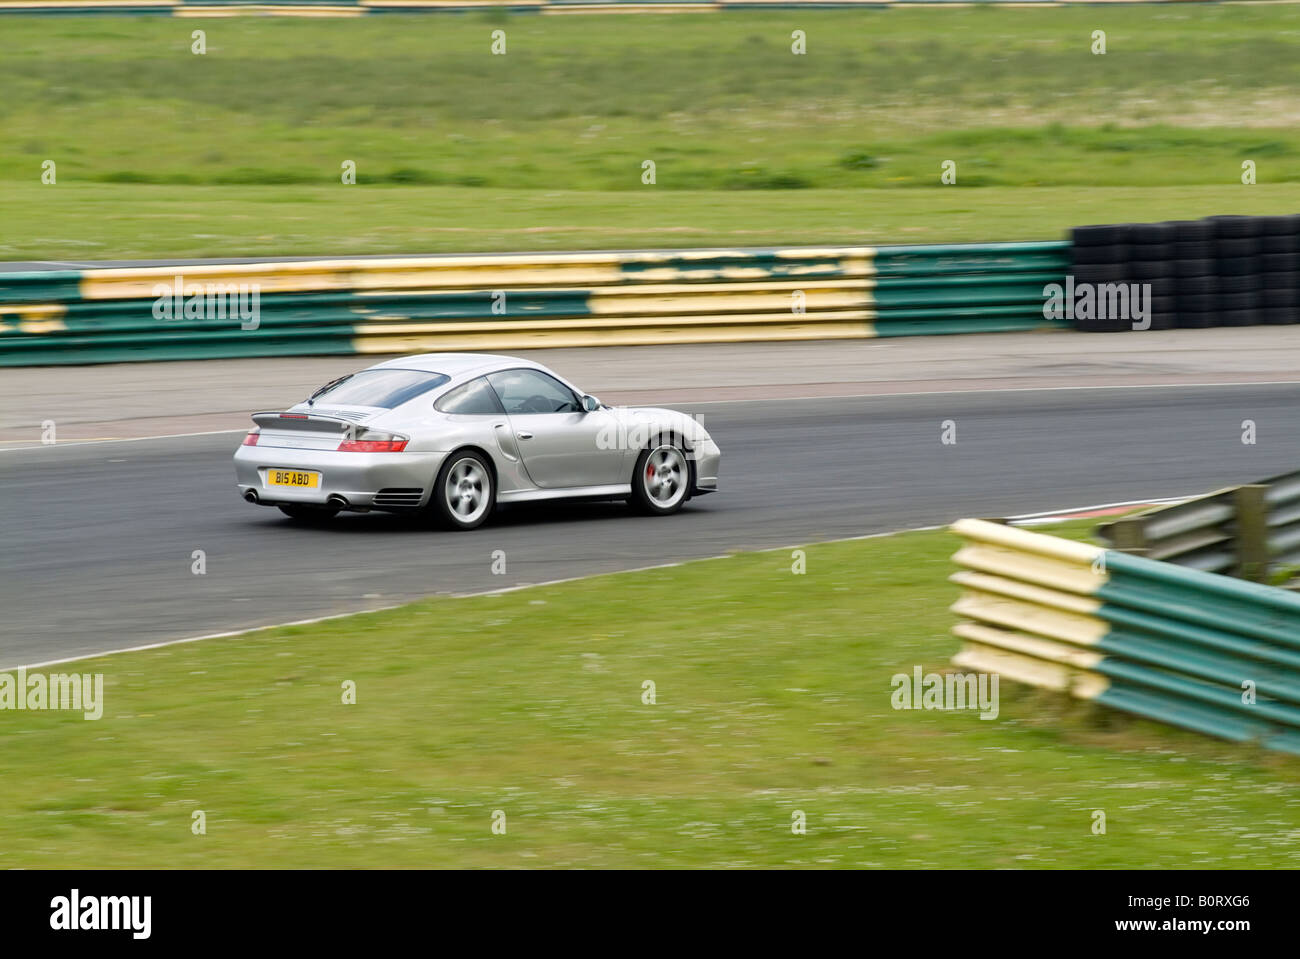 porsche 911 turbo 996 fast car supercar super track day trackday race circuit racing road car - Stock Image